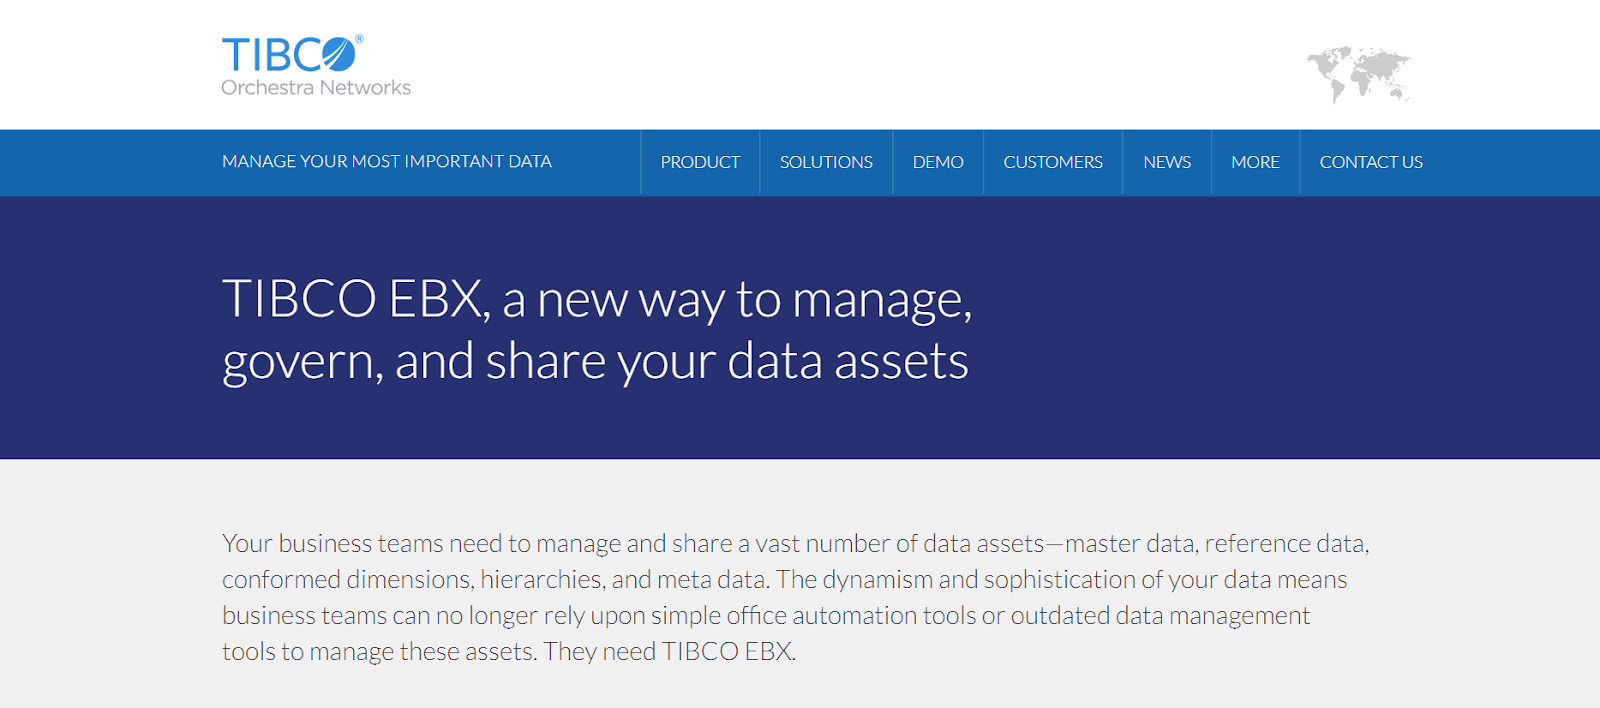 Orchestra Networks Data Management Tool